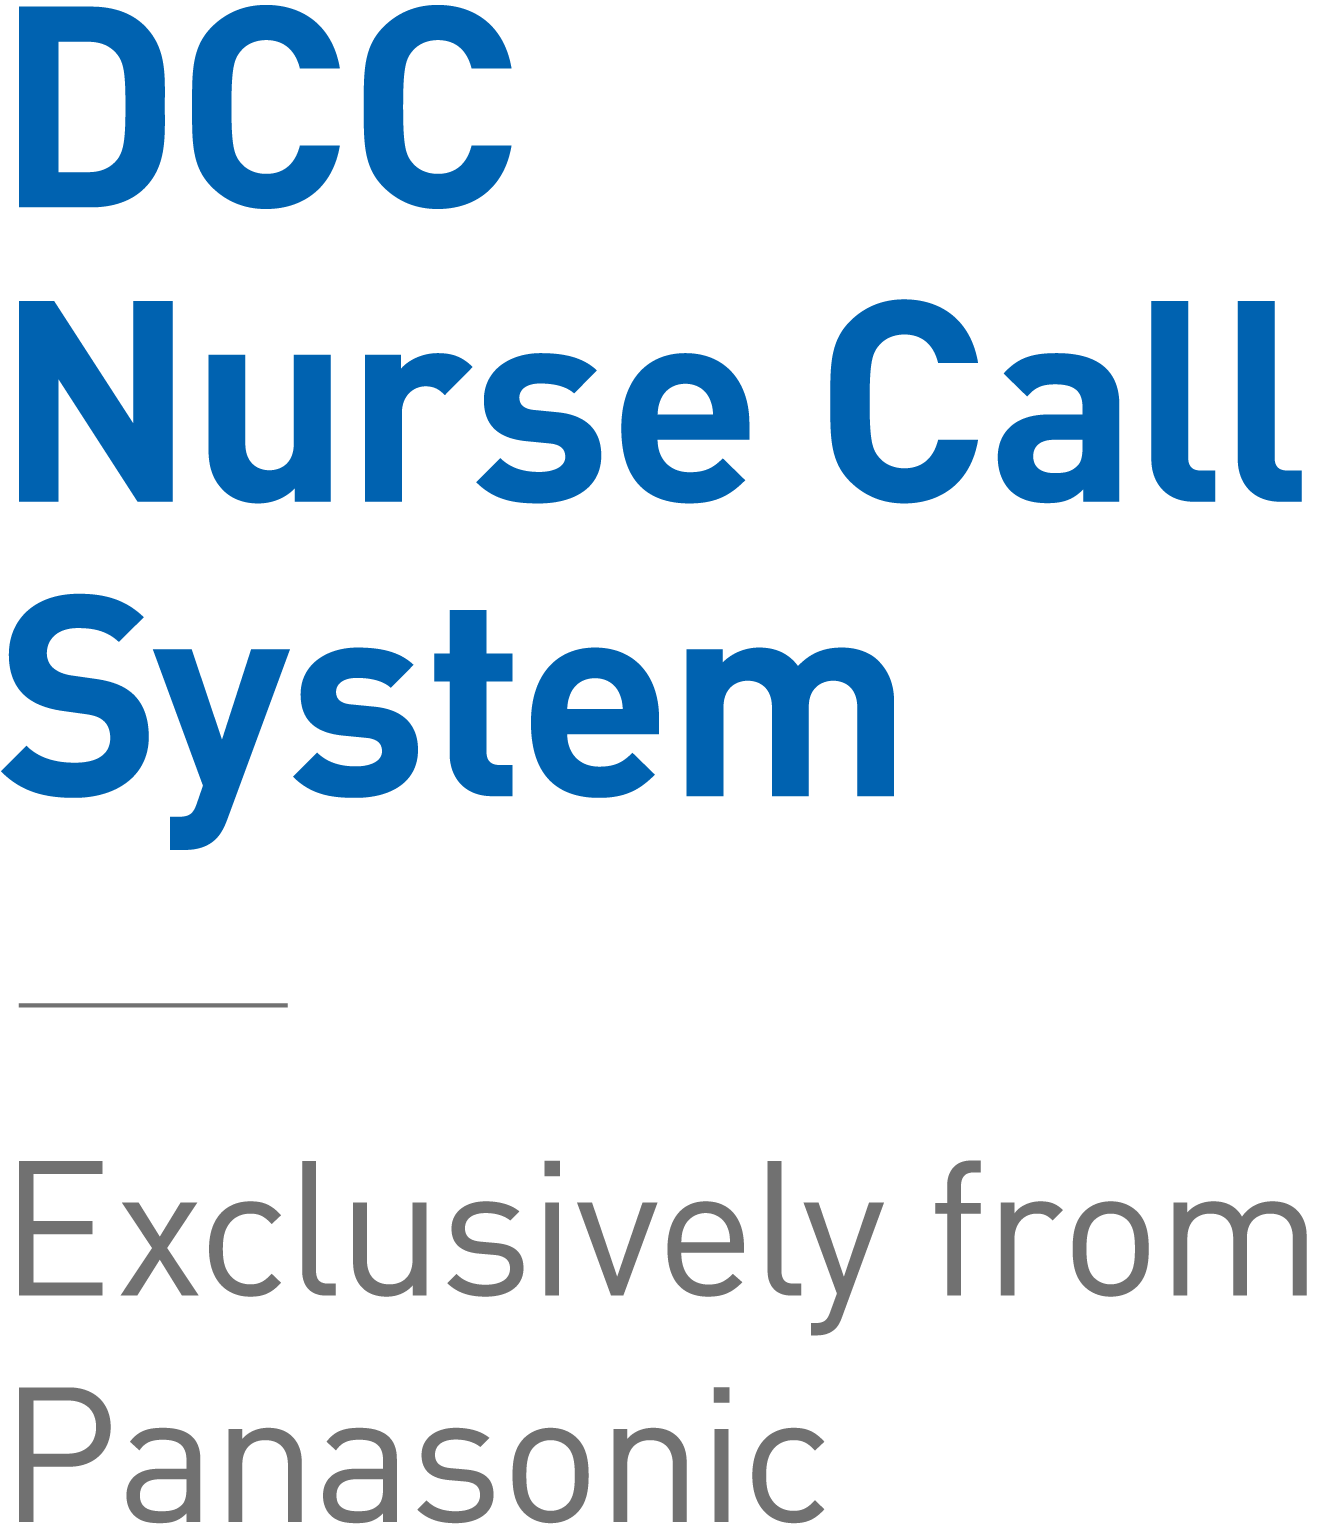 DCC Nurse call system - Exclusively from Panasonic